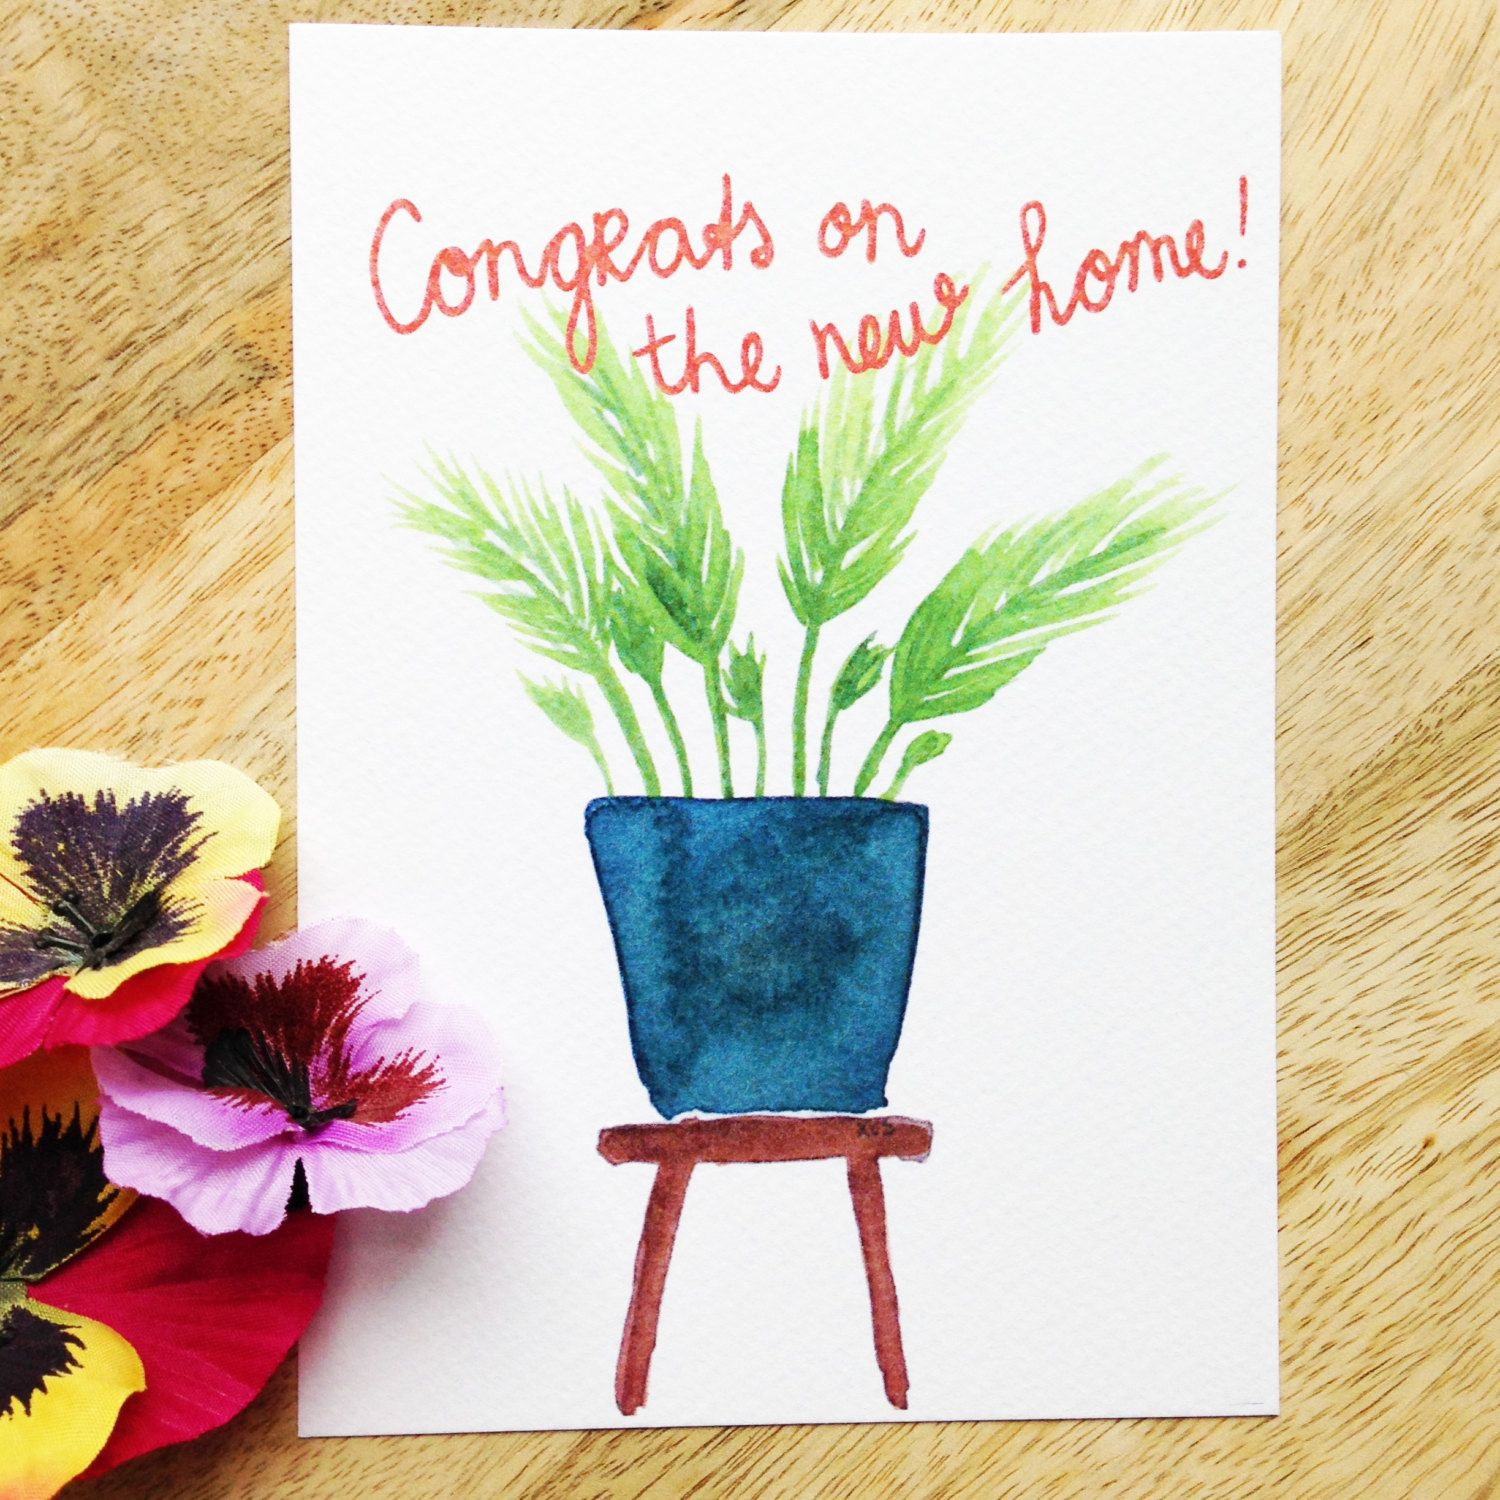 Congratulations on the new home postcard card wishes new congratulations on the new home postcard card wishes new house kristyandbryce Gallery